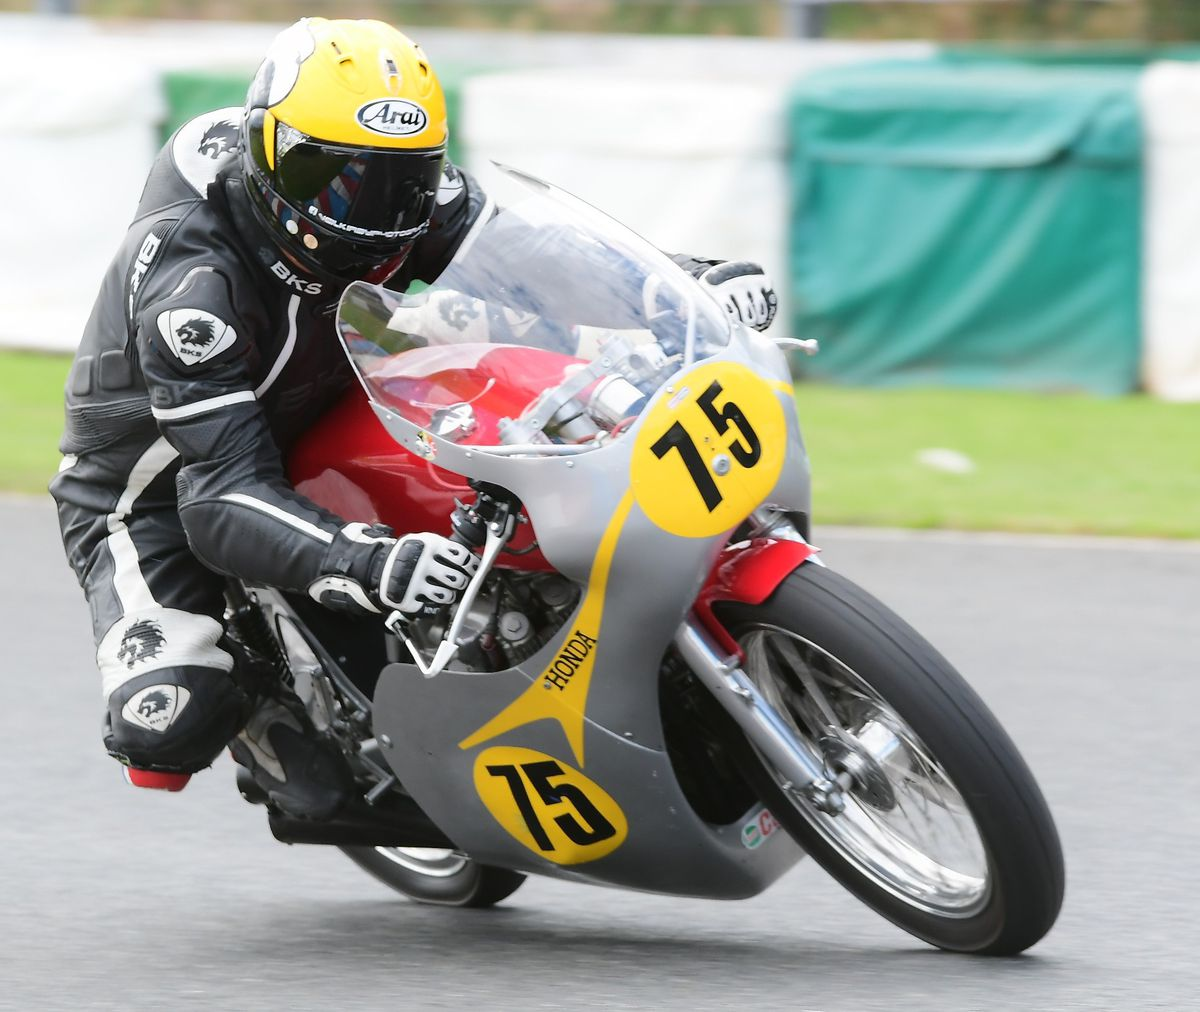 Lloyd in action with EMRA at Mallory Park. Picture: Steve Snelling